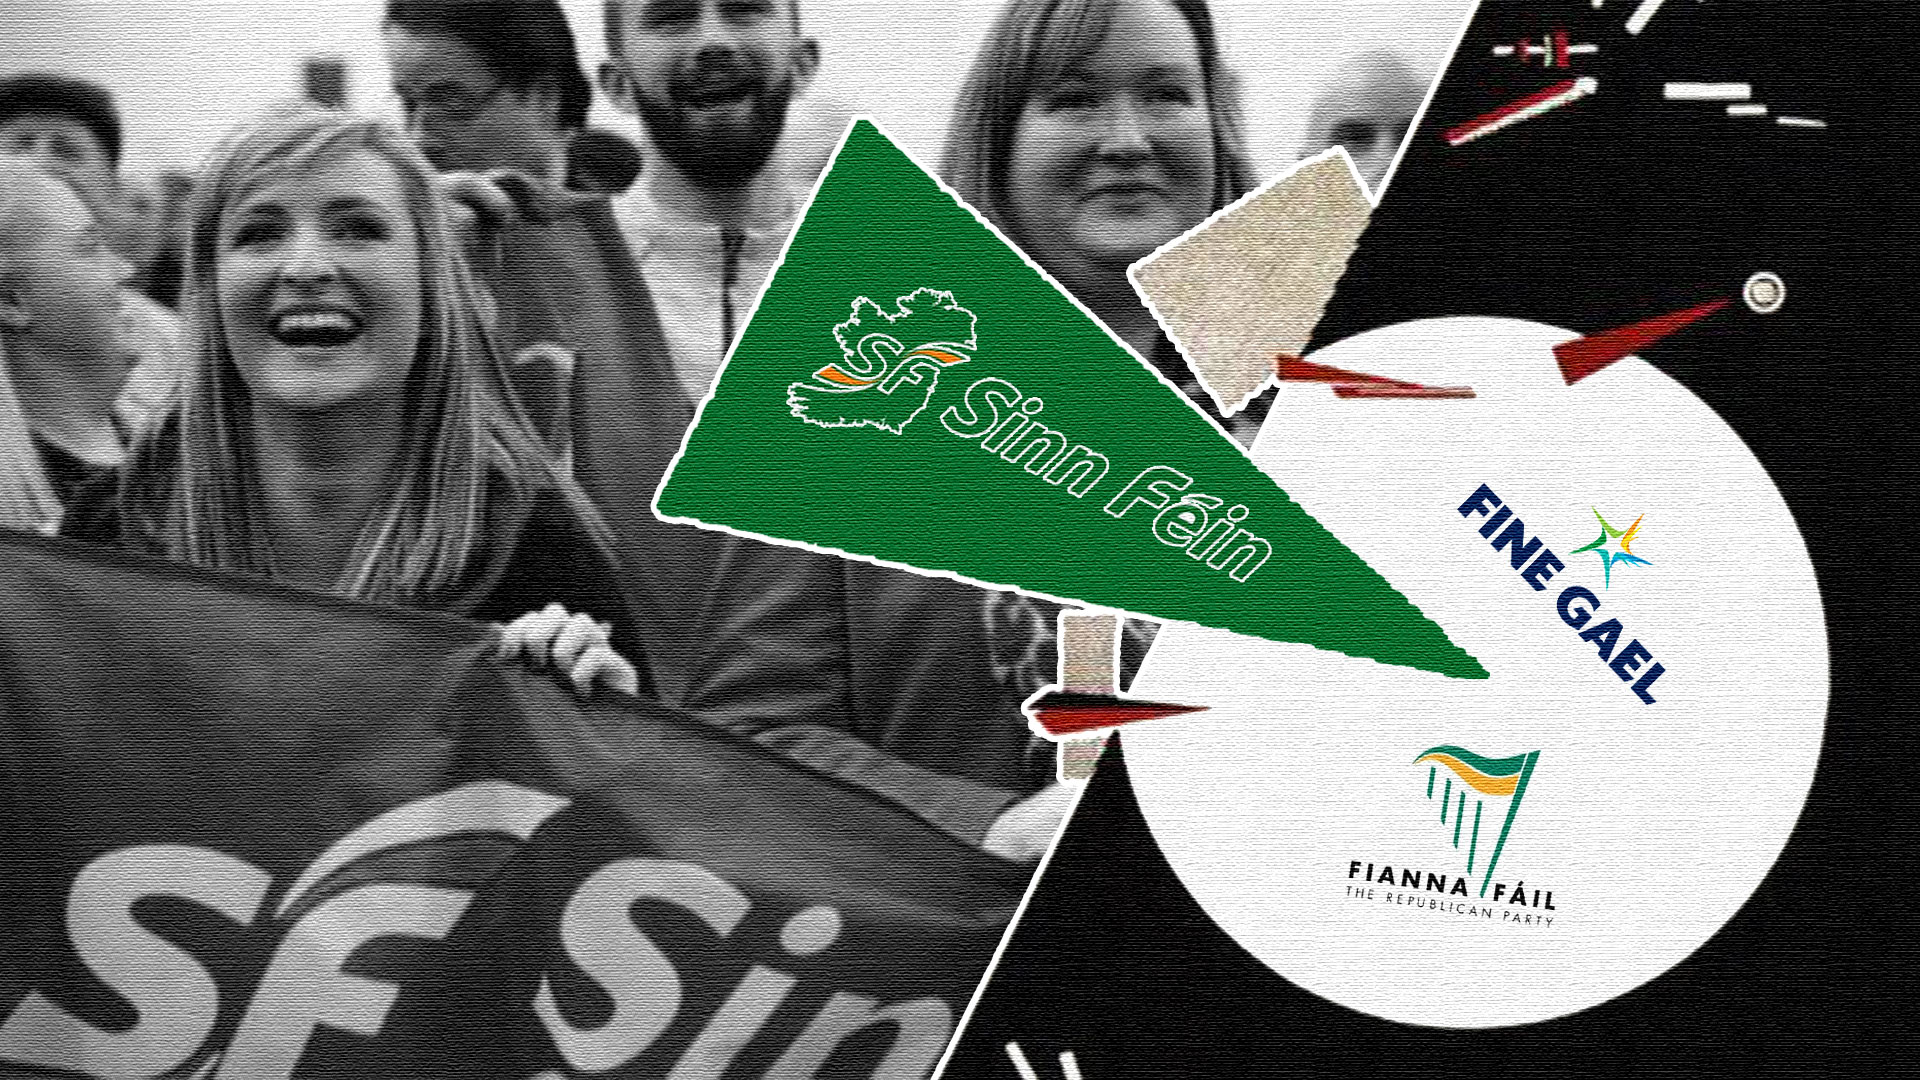 Left-wing Sinn Fein uproots establishment parties' hegemony in Ireland_